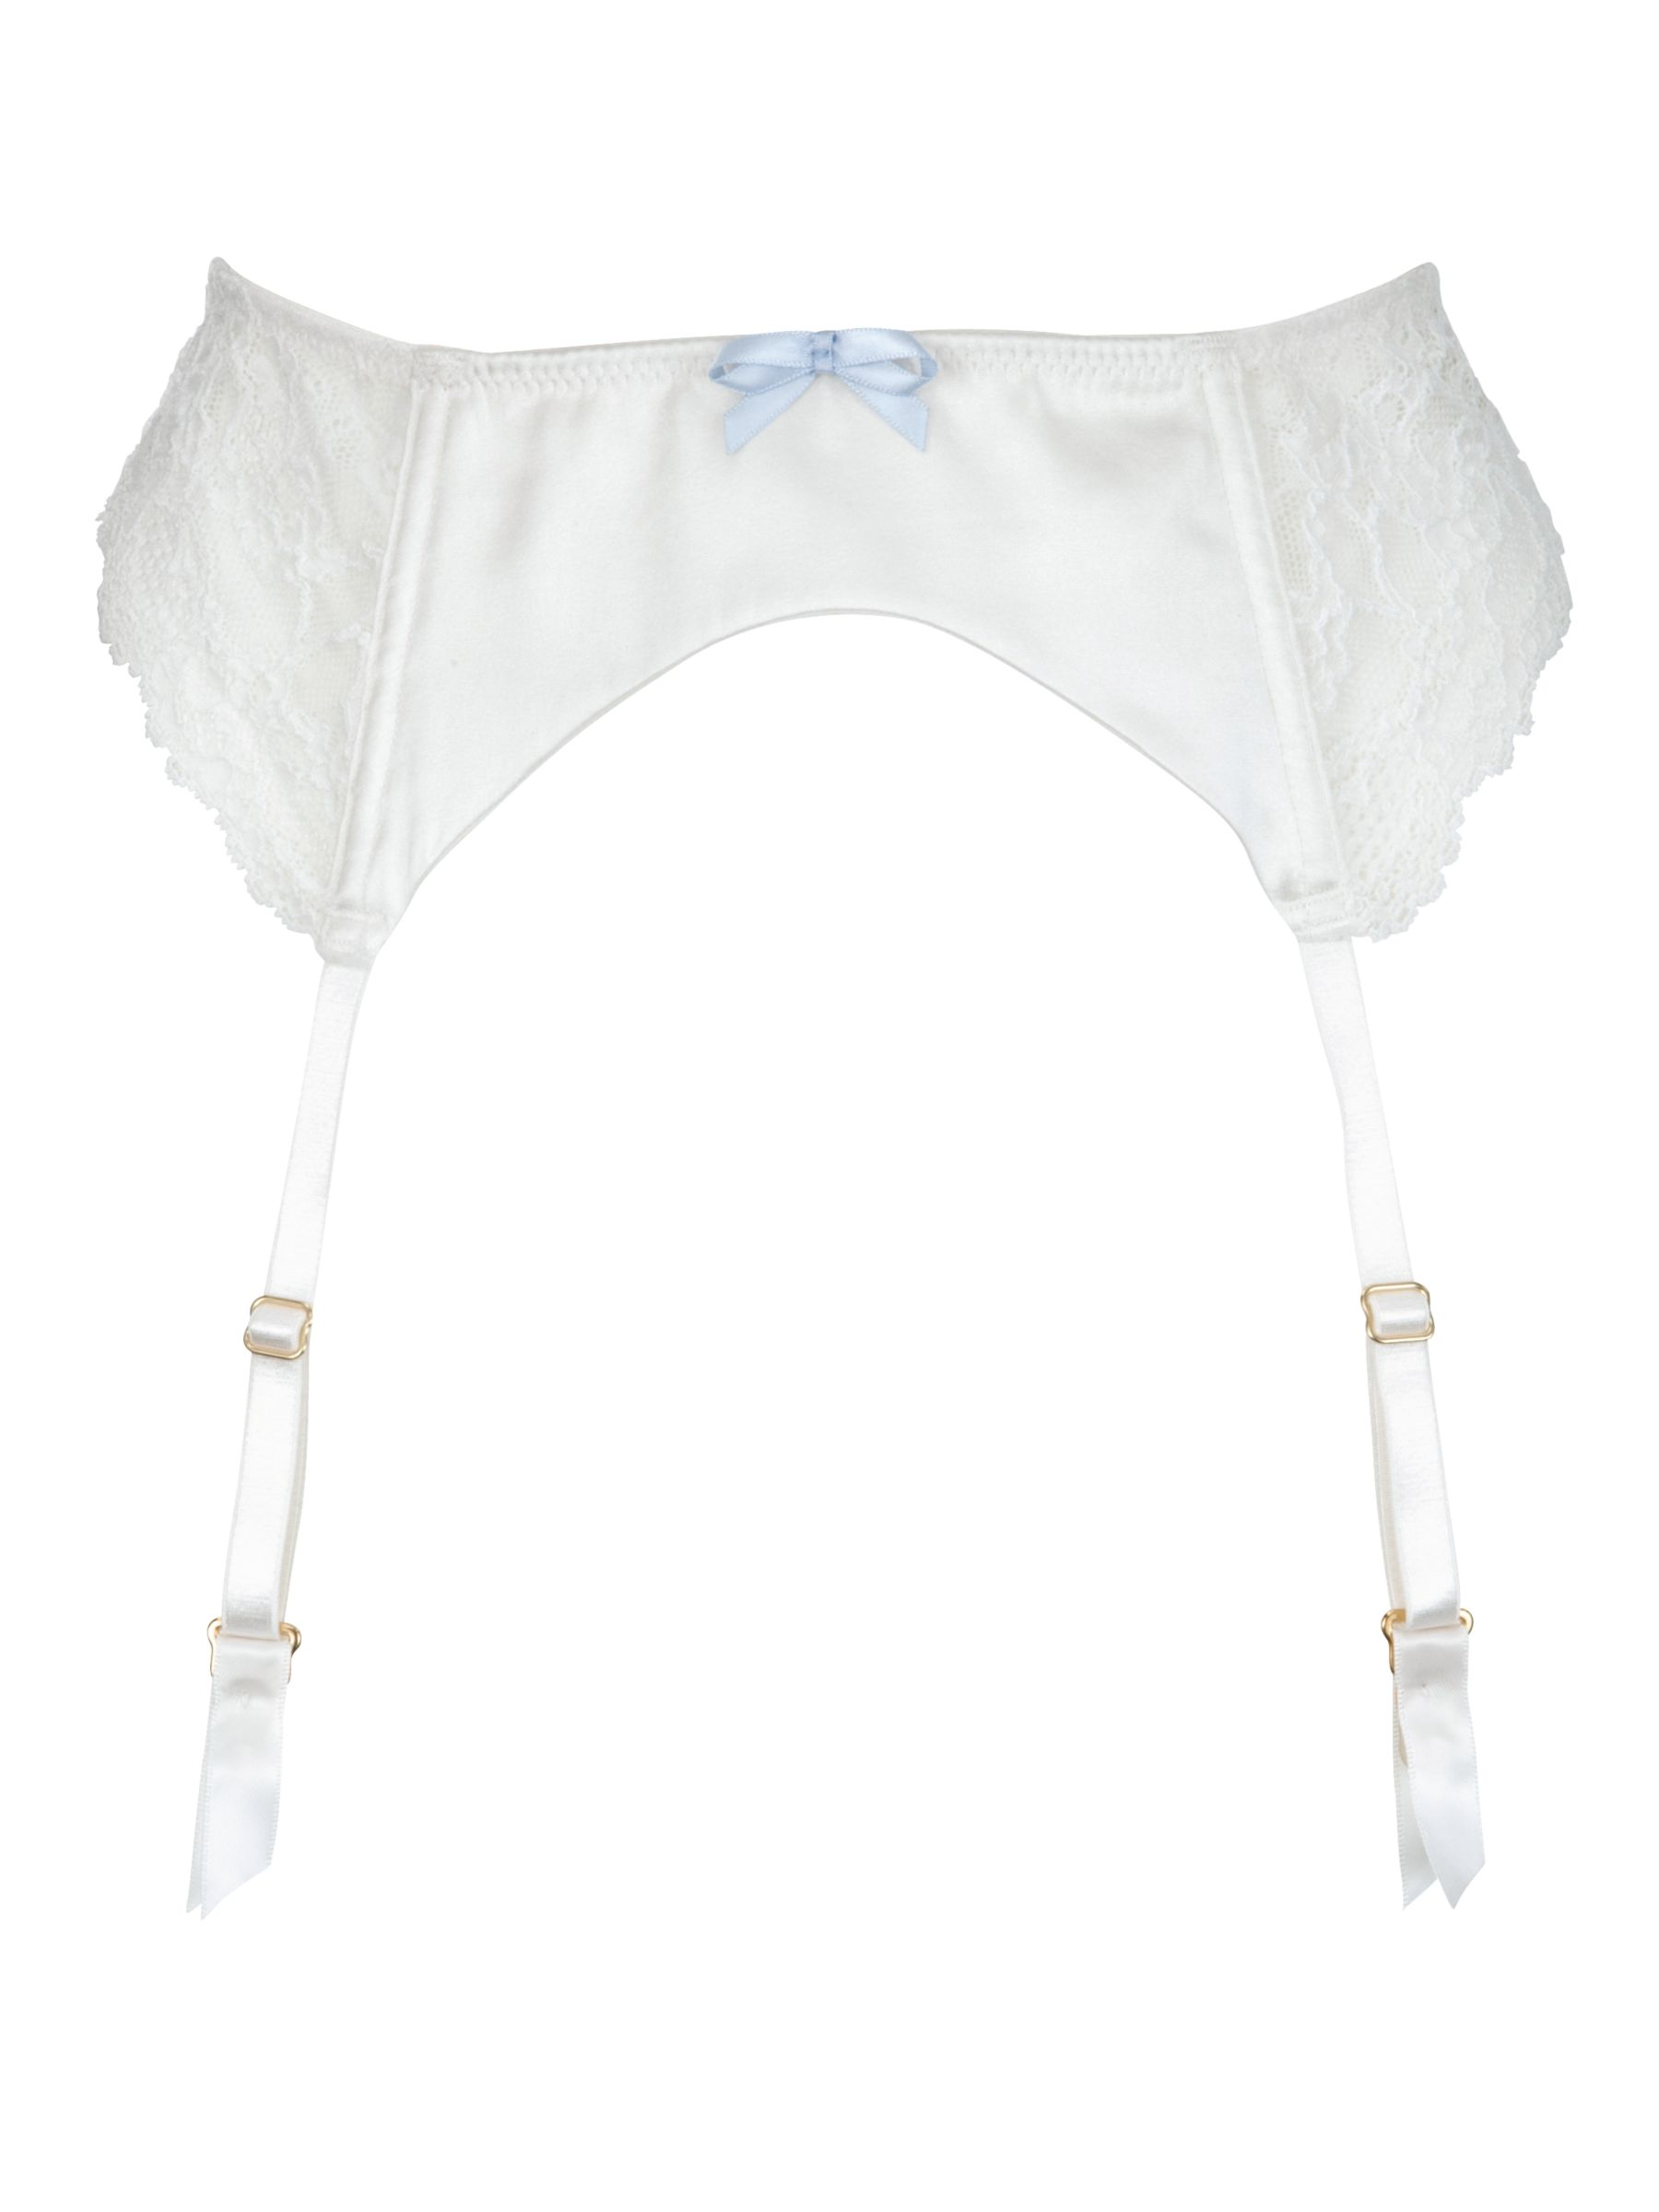 COLLECTION by John Lewis Bridal Lana Suspender Belt, Ivory